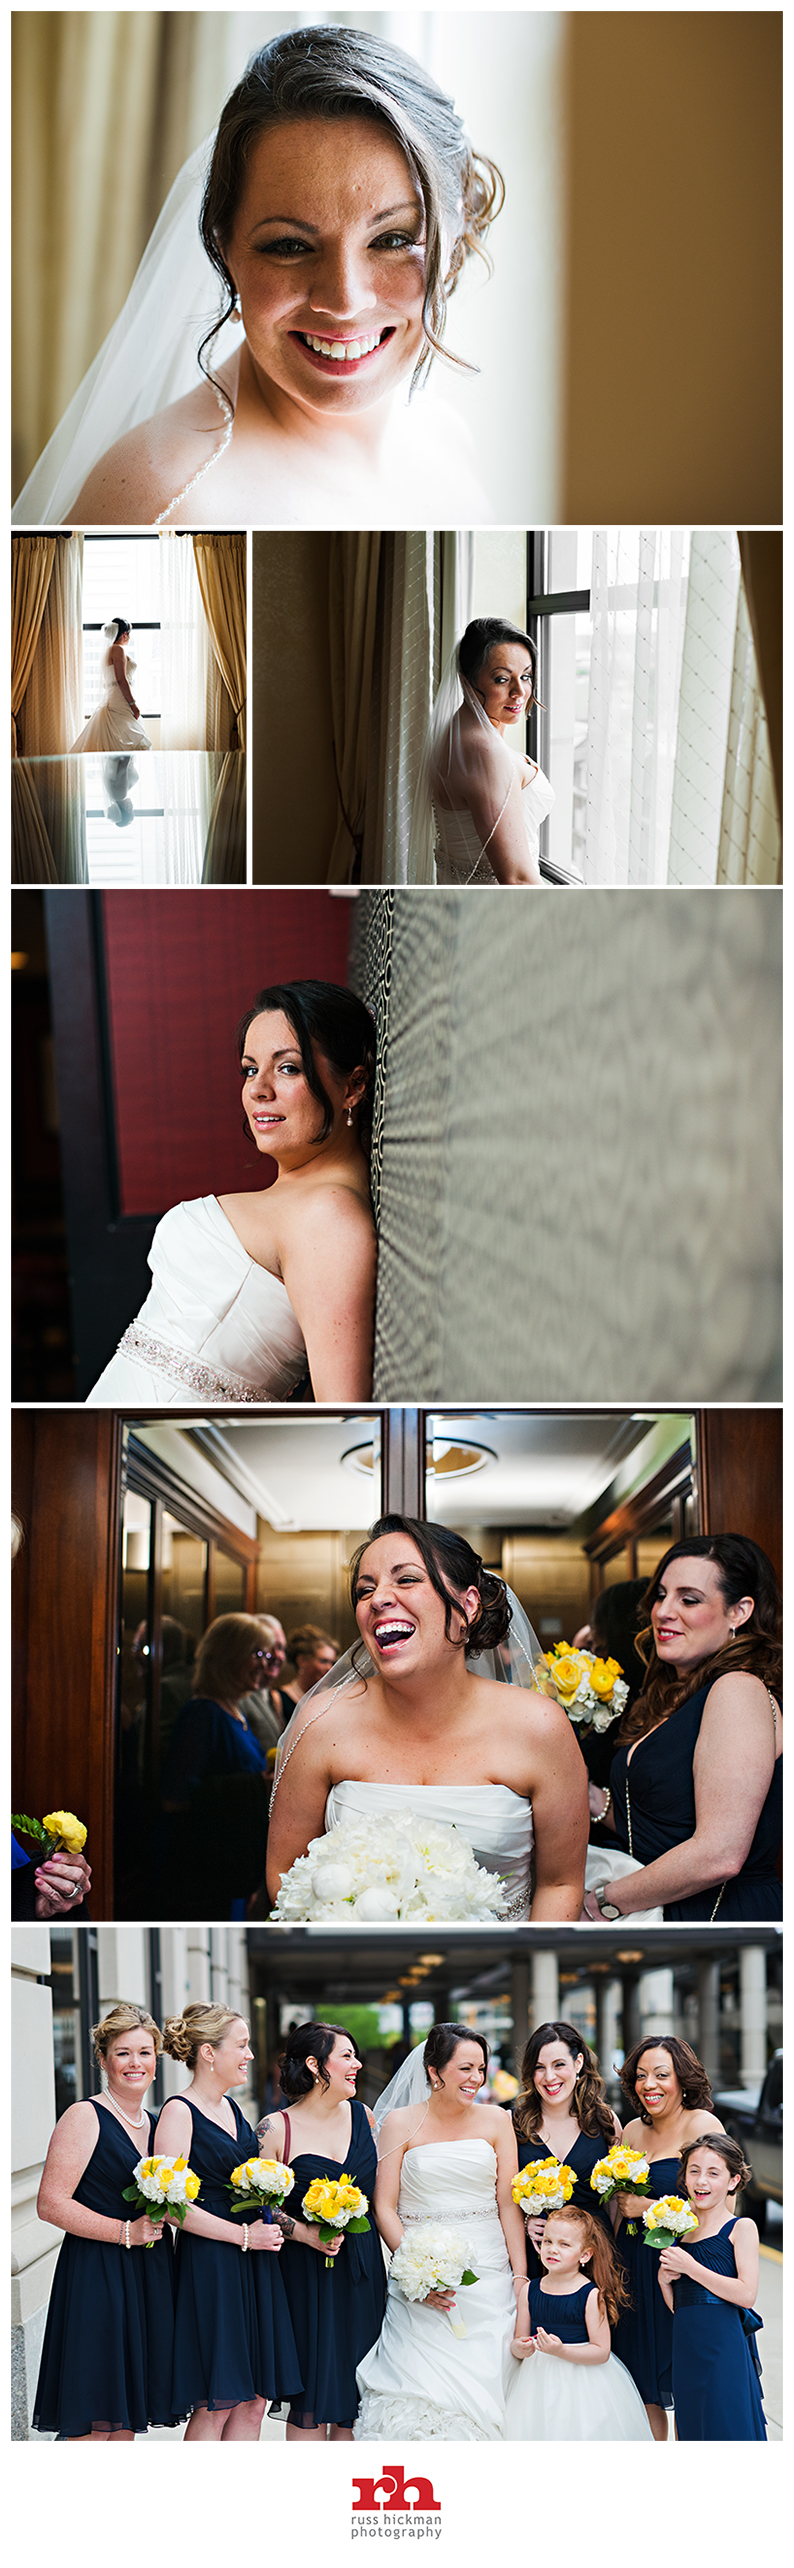 Philadelphia Wedding Photographer ABWB0005